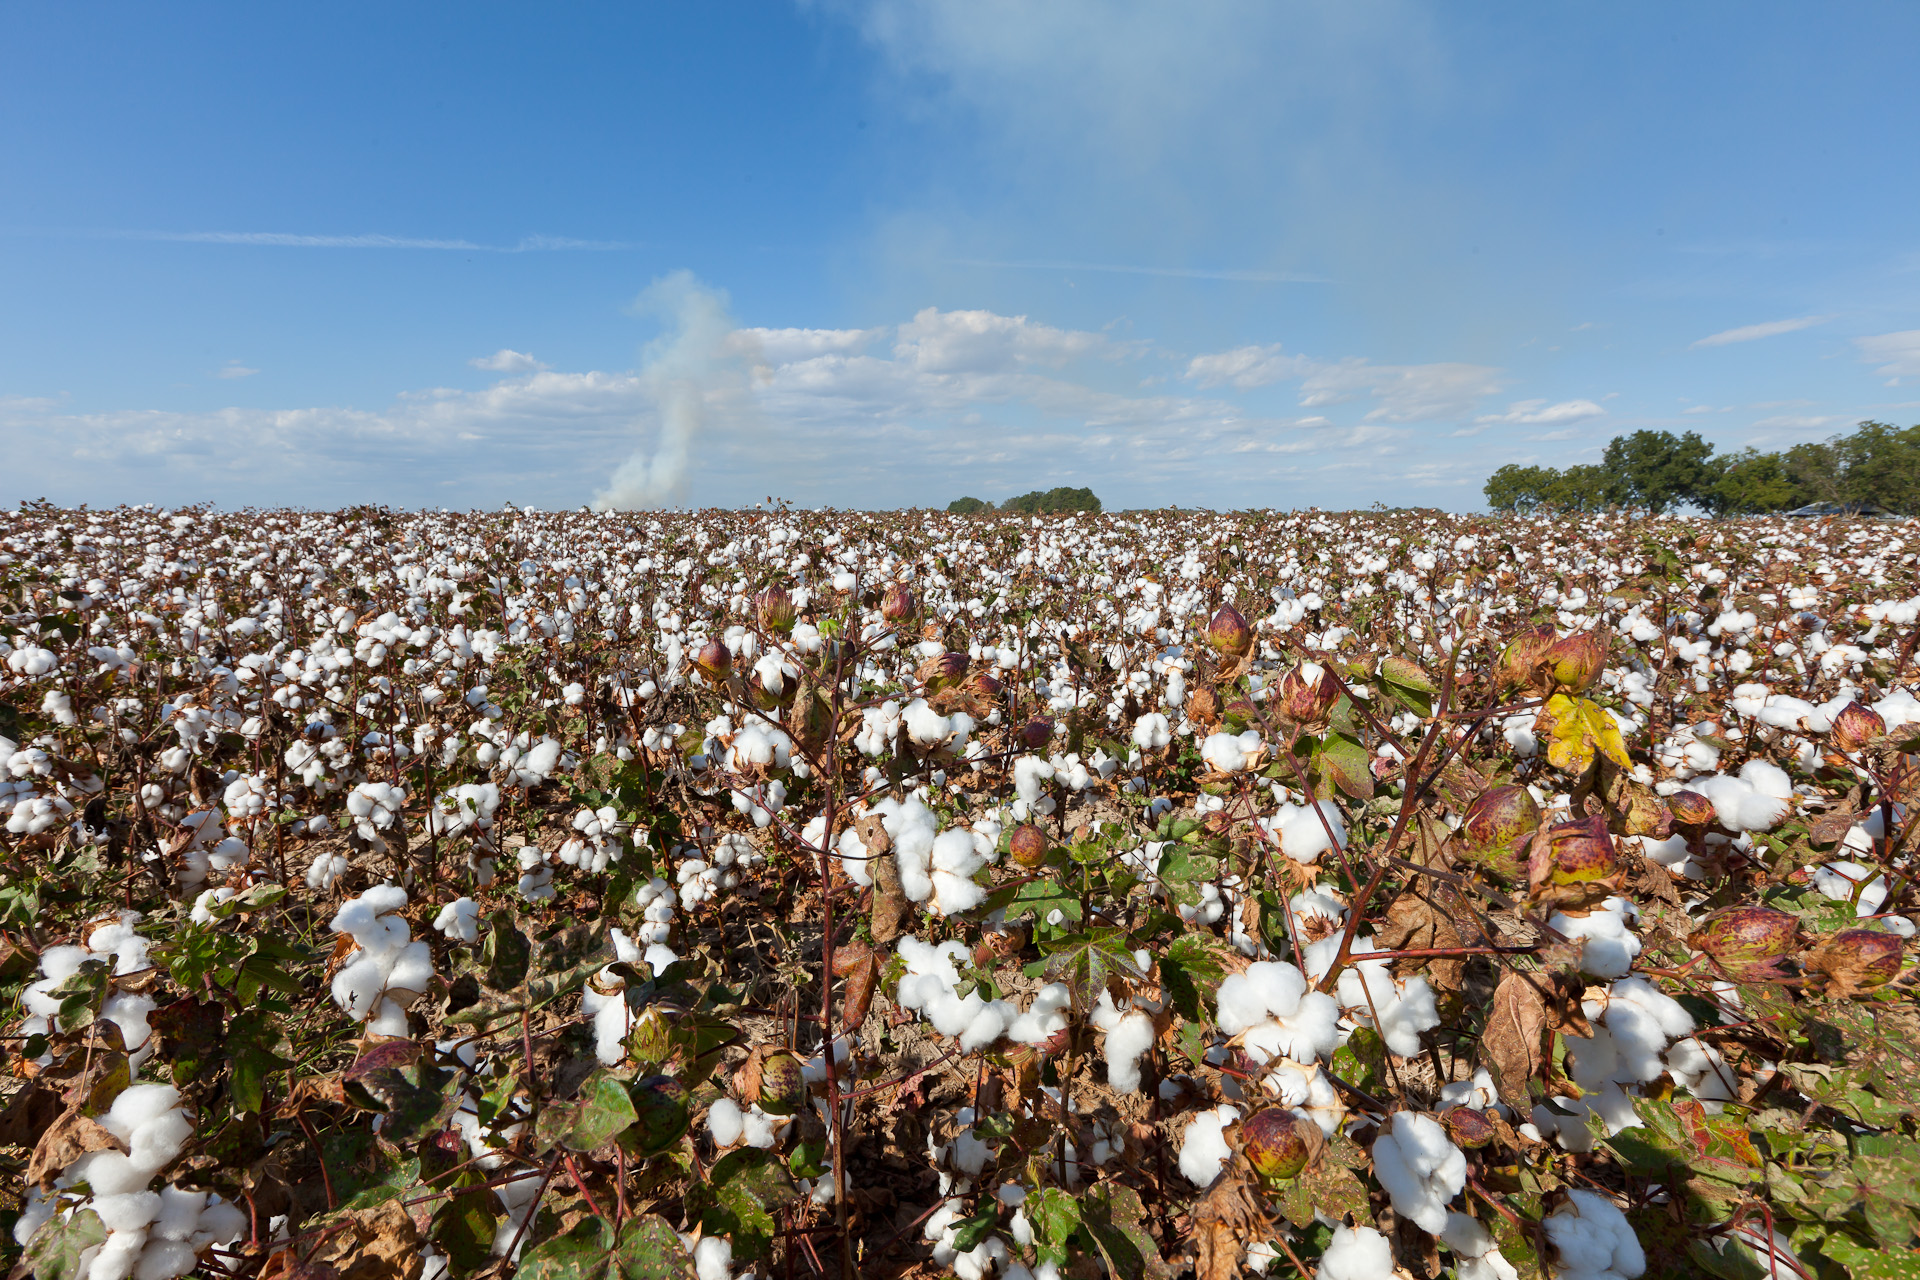 Cotton ready to harvest and smoke from burning rice stubble in the background.